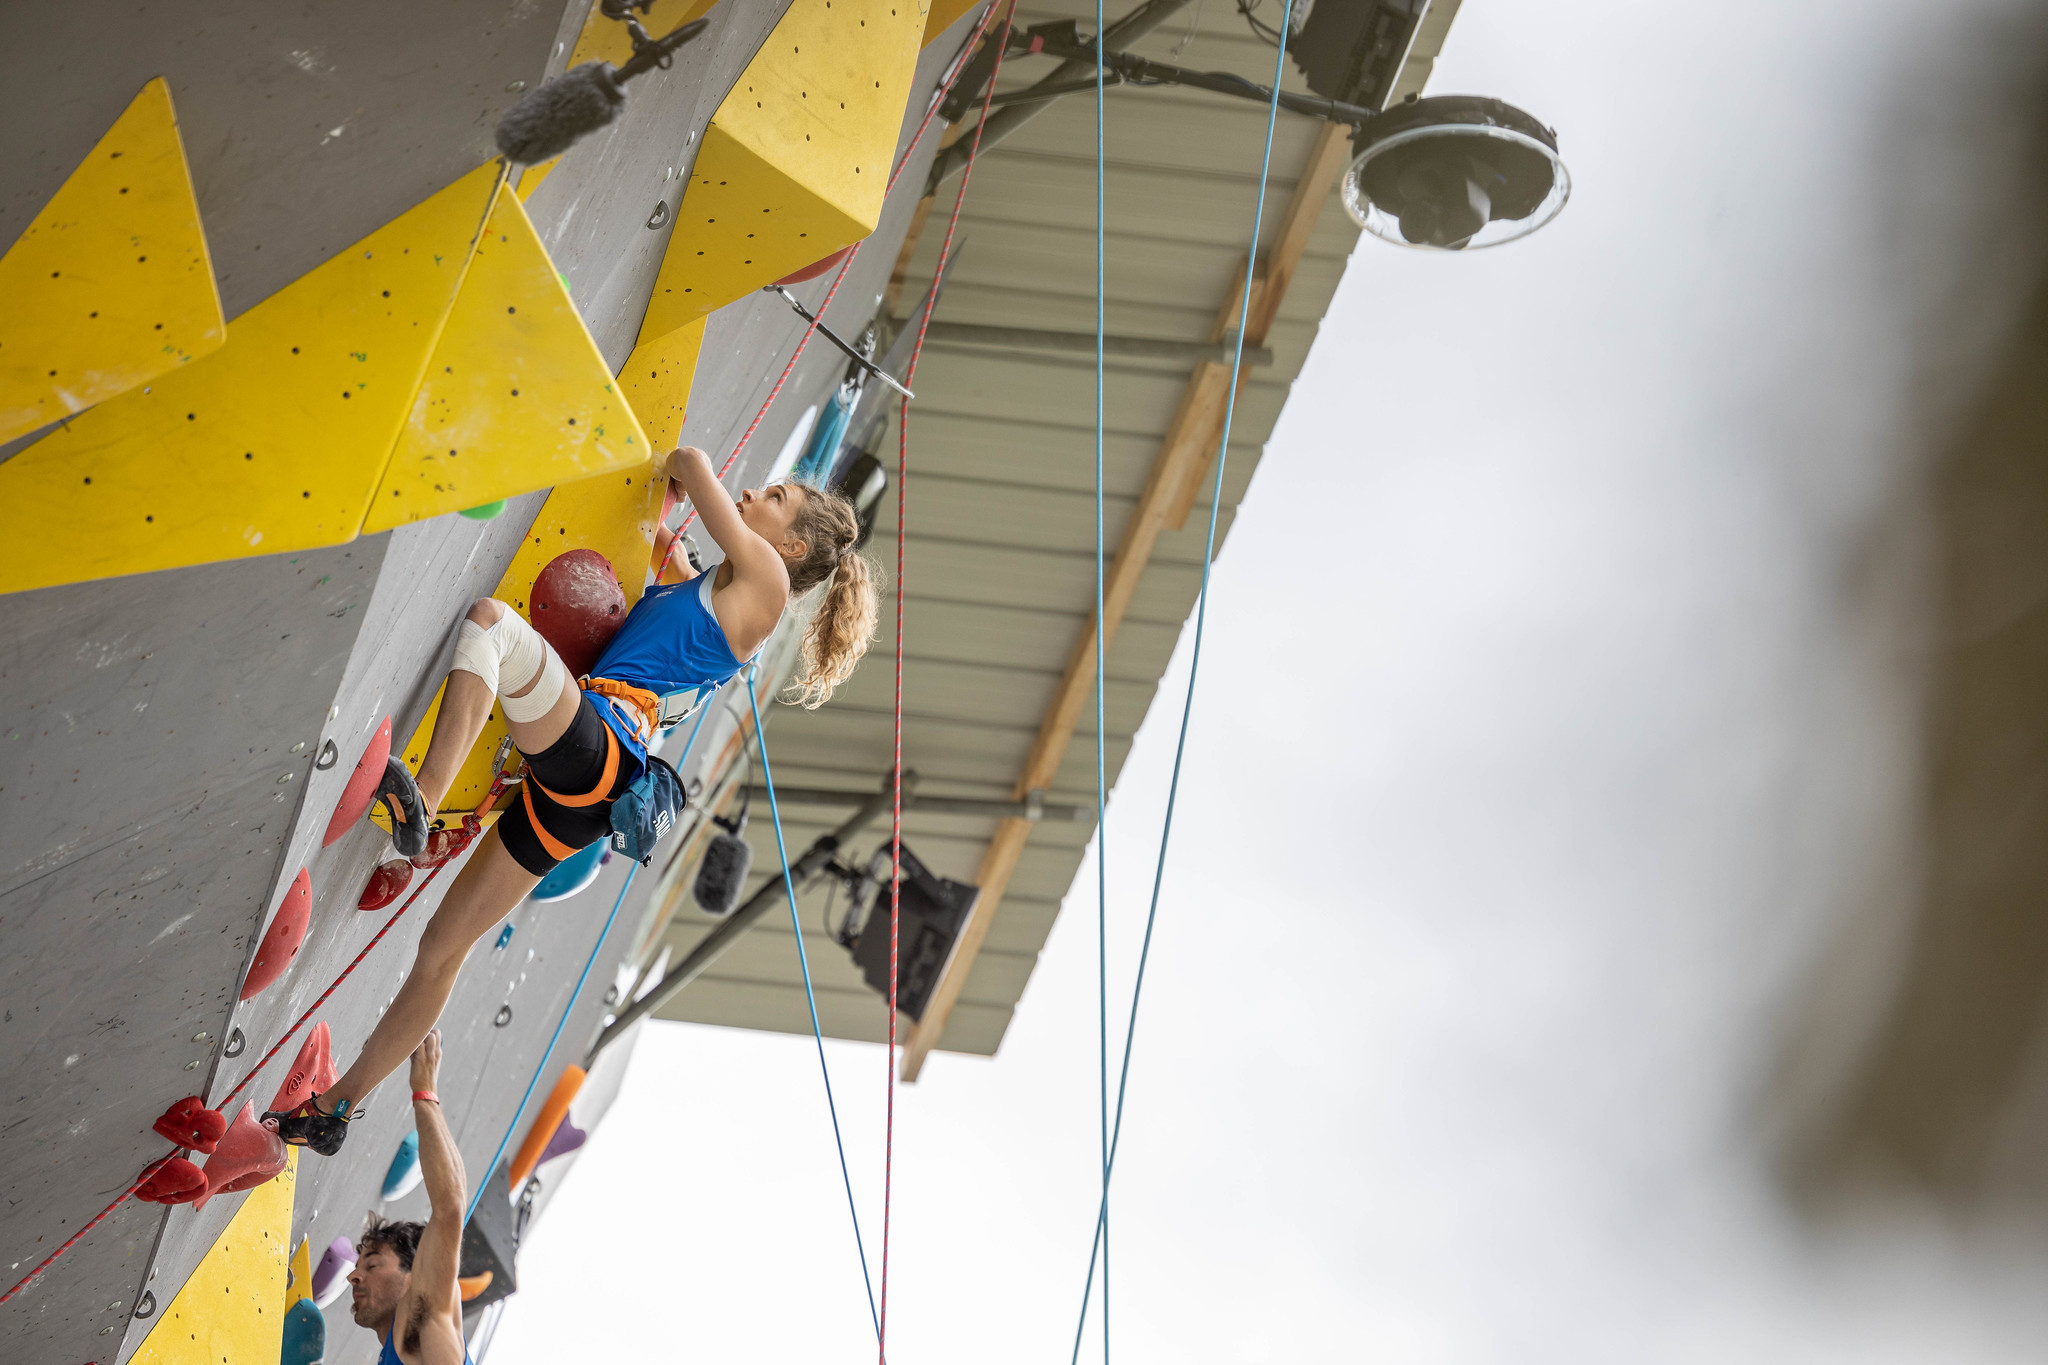 Solenne Piret was among the French winners at the IFSC Paraclimbing World Cup in Briançon ©IFSC/Jan Virt